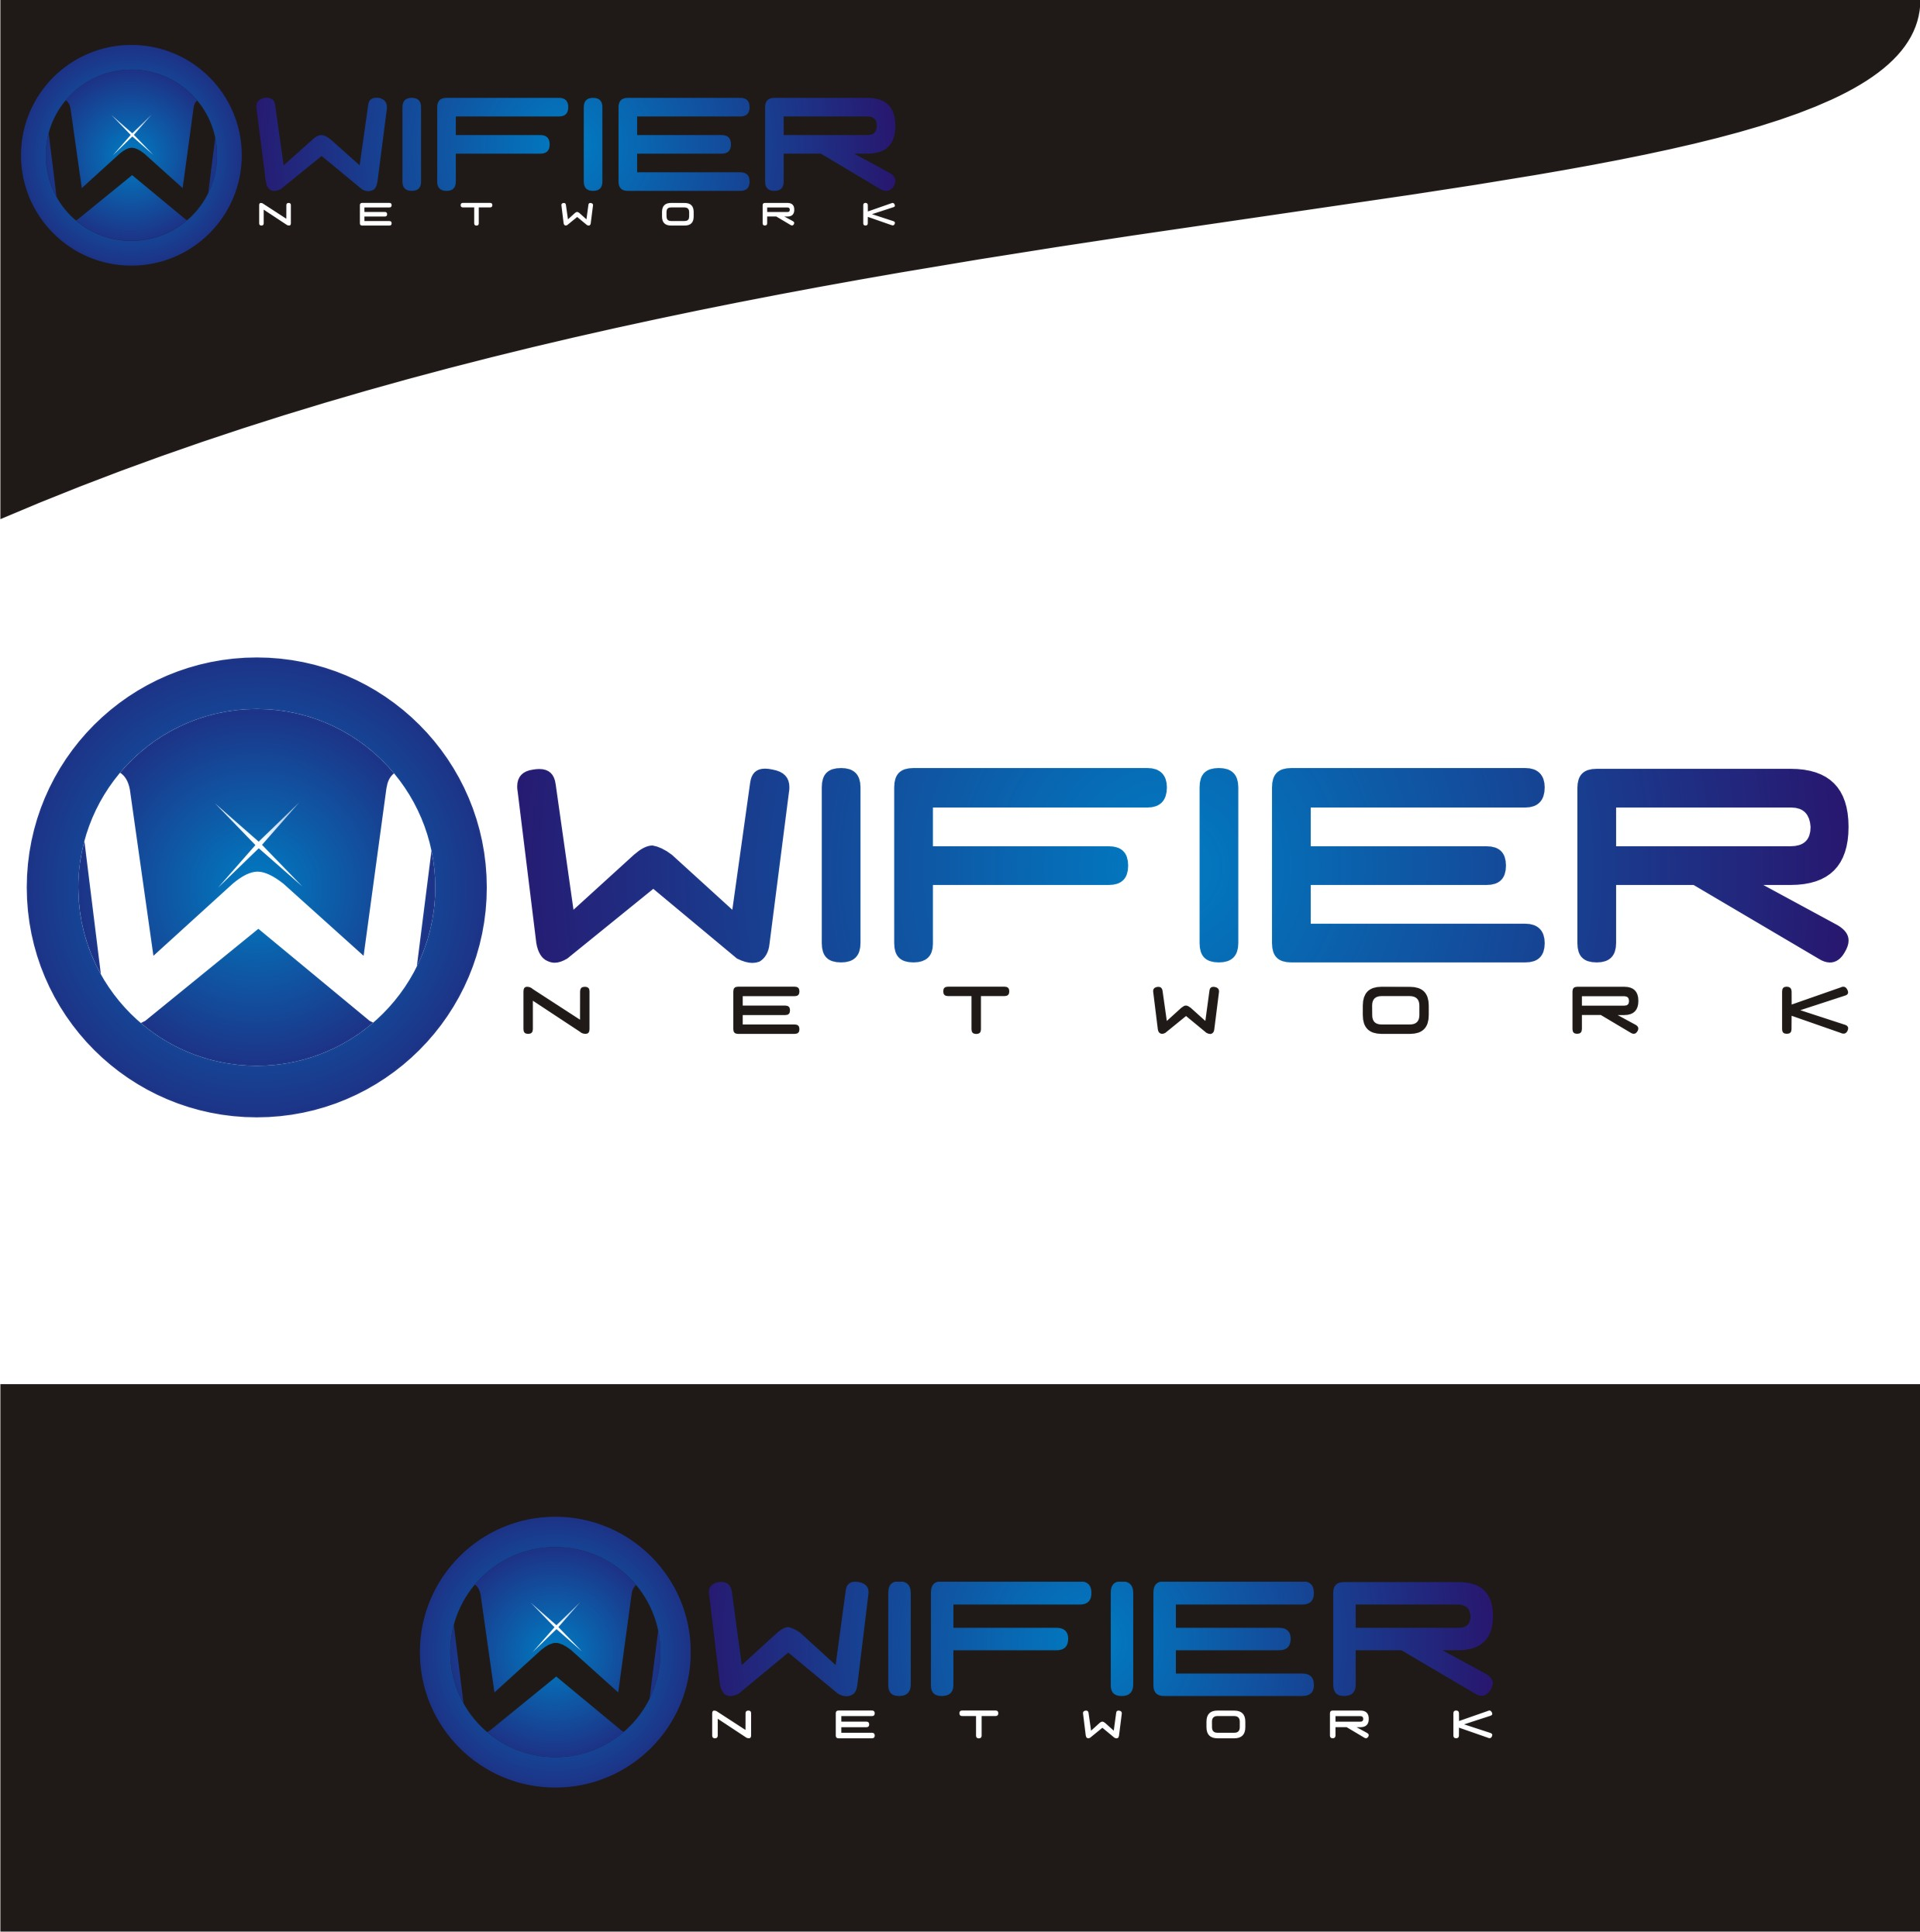 Logo Design by Candra Ardi - Entry No. 244 in the Logo Design Contest New Logo Design for Wifier Network.